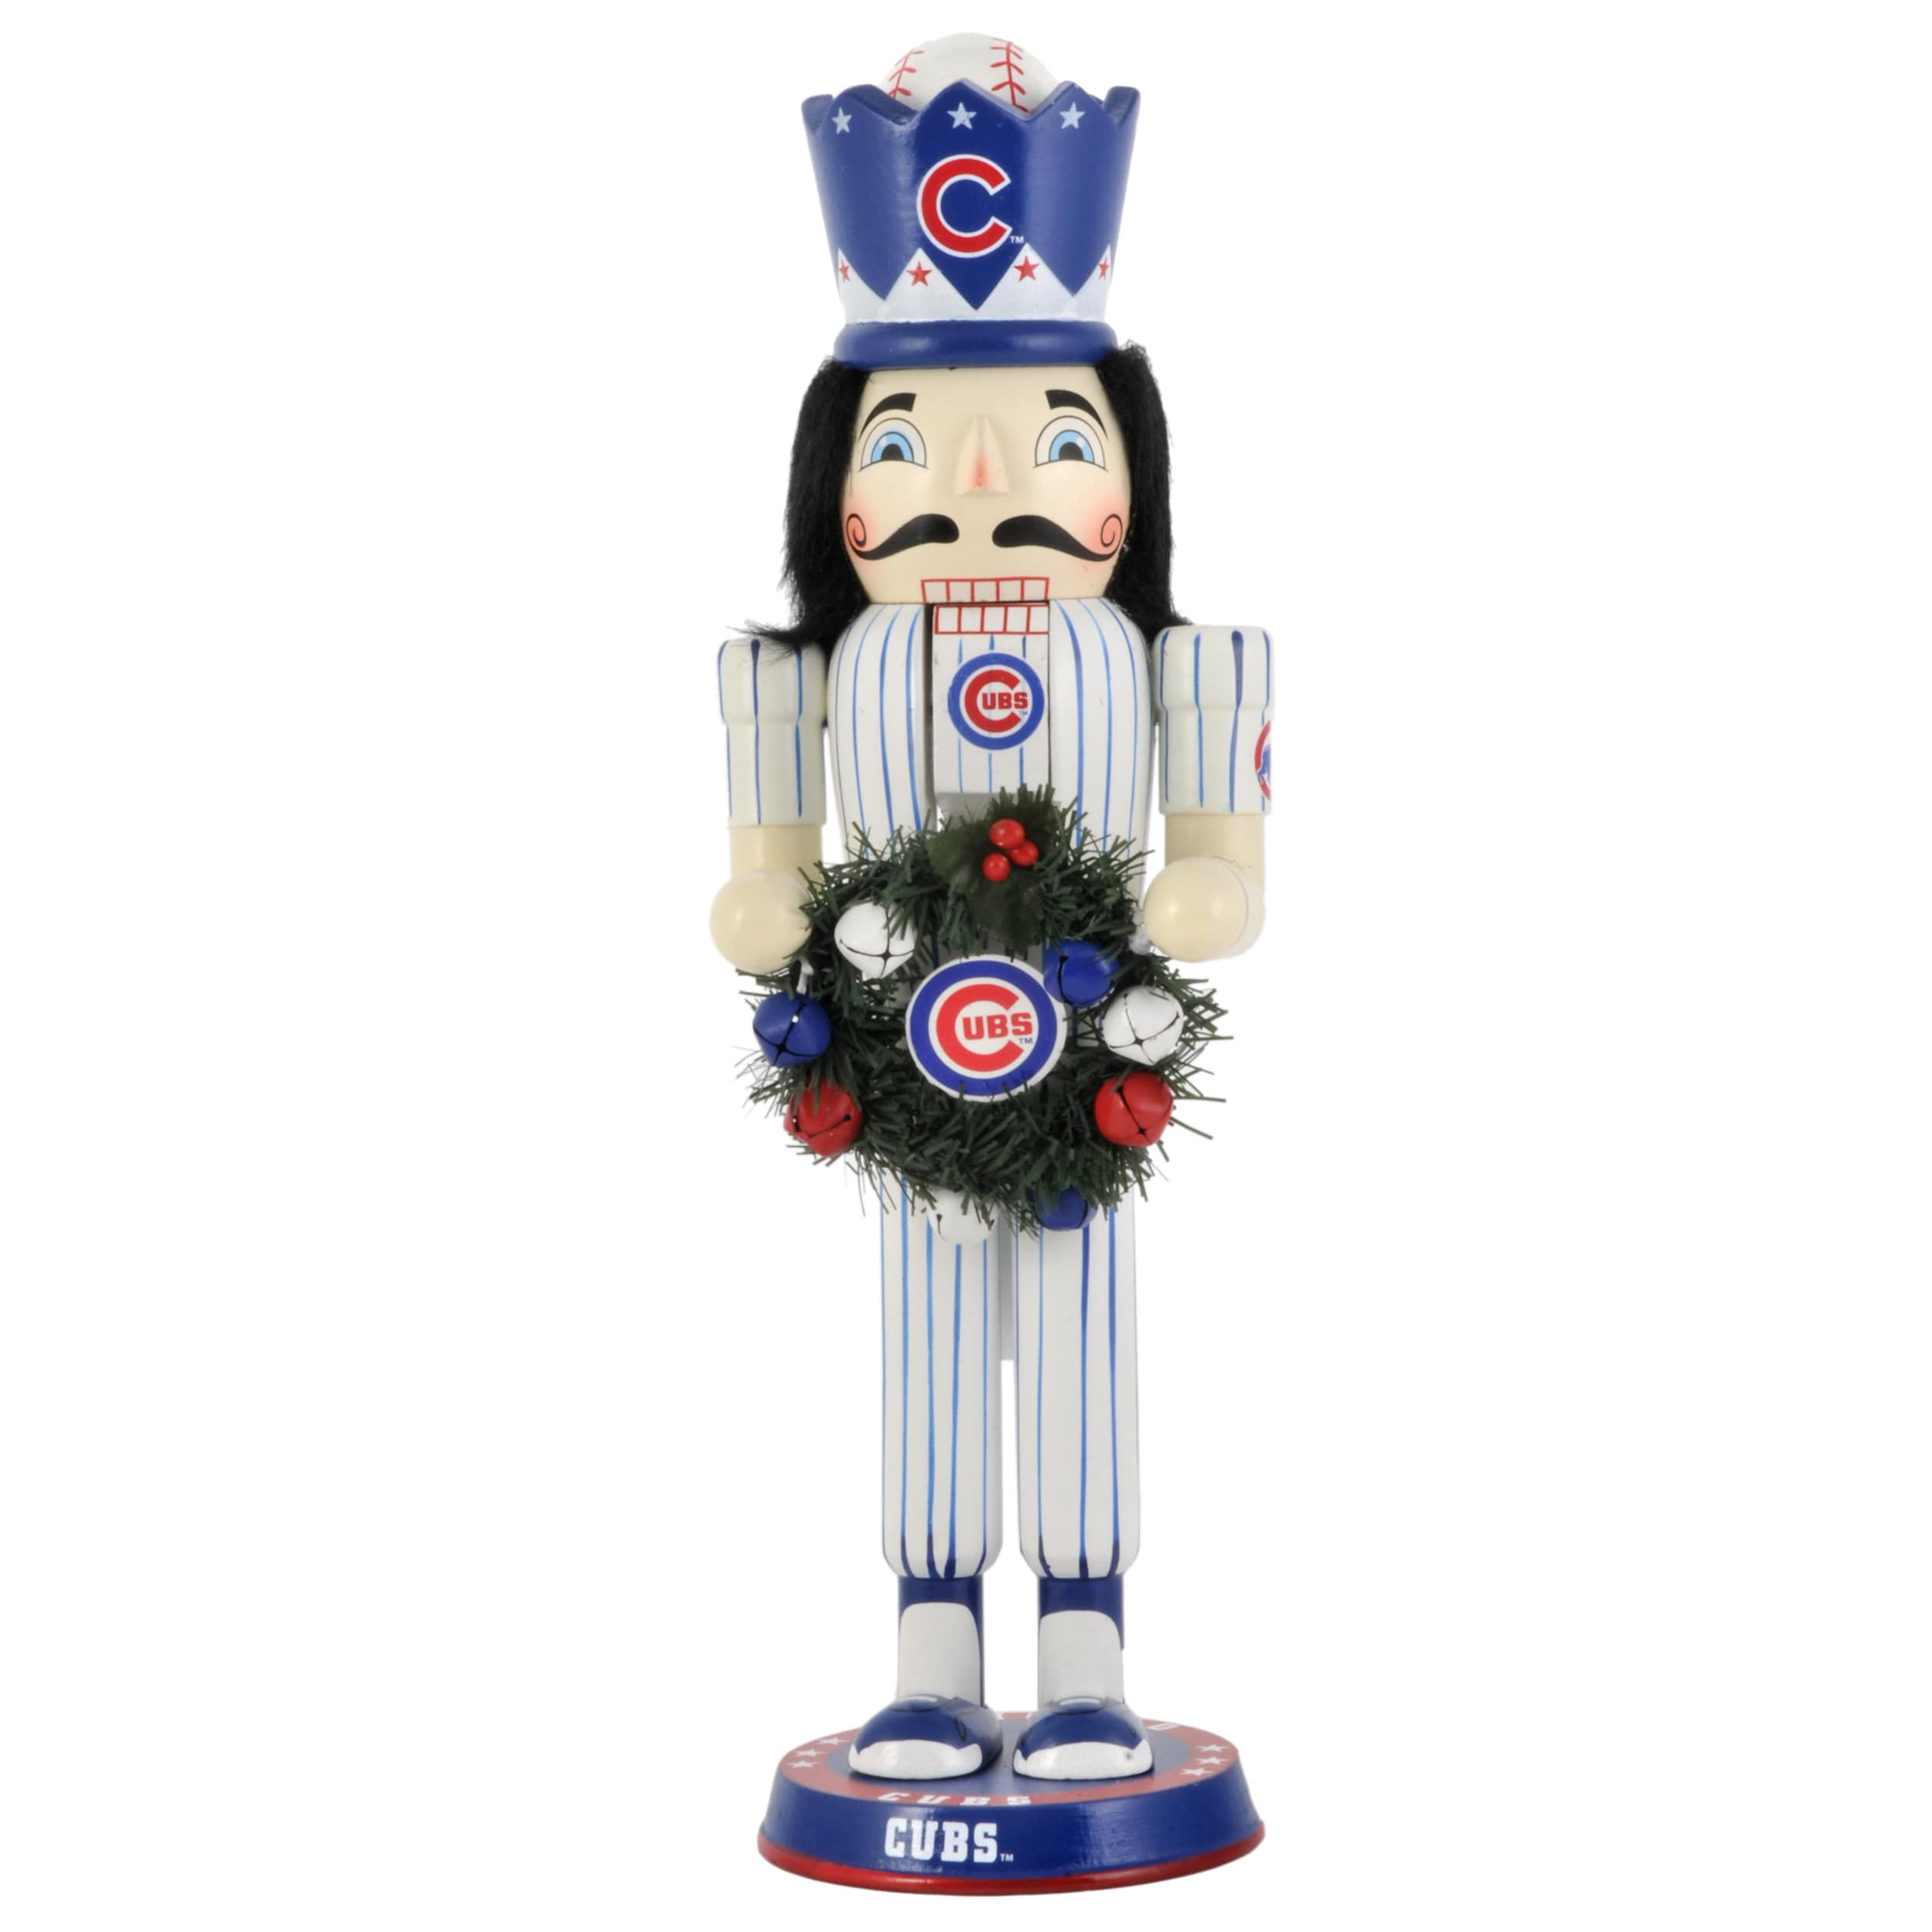 Chicago Cubs 14-inch Wreath Nutcracker